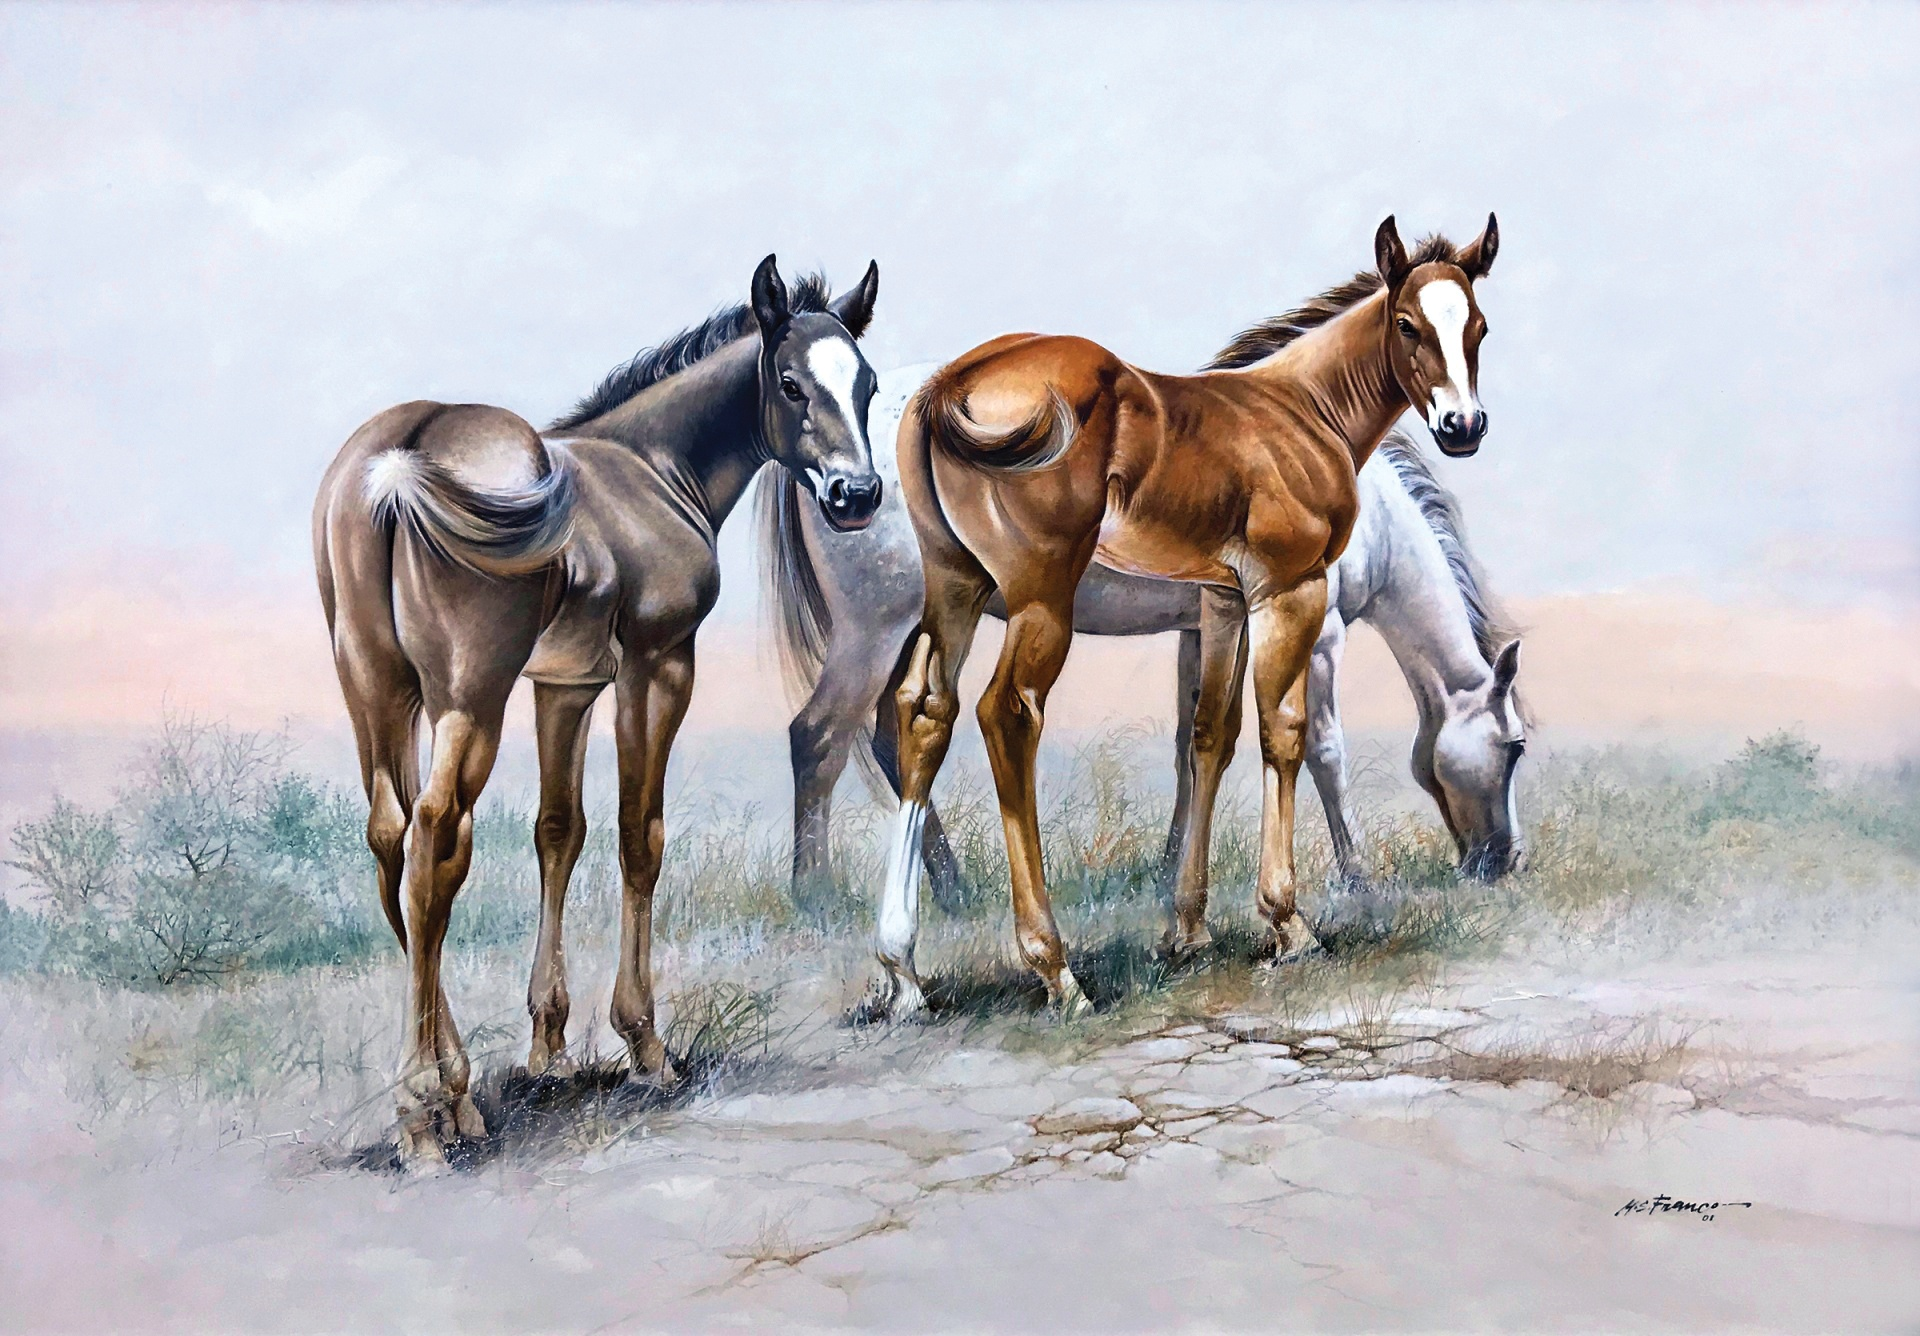 """ Pair of Aces "" Image size 27 x 38 1/2"" Oil on Linen"